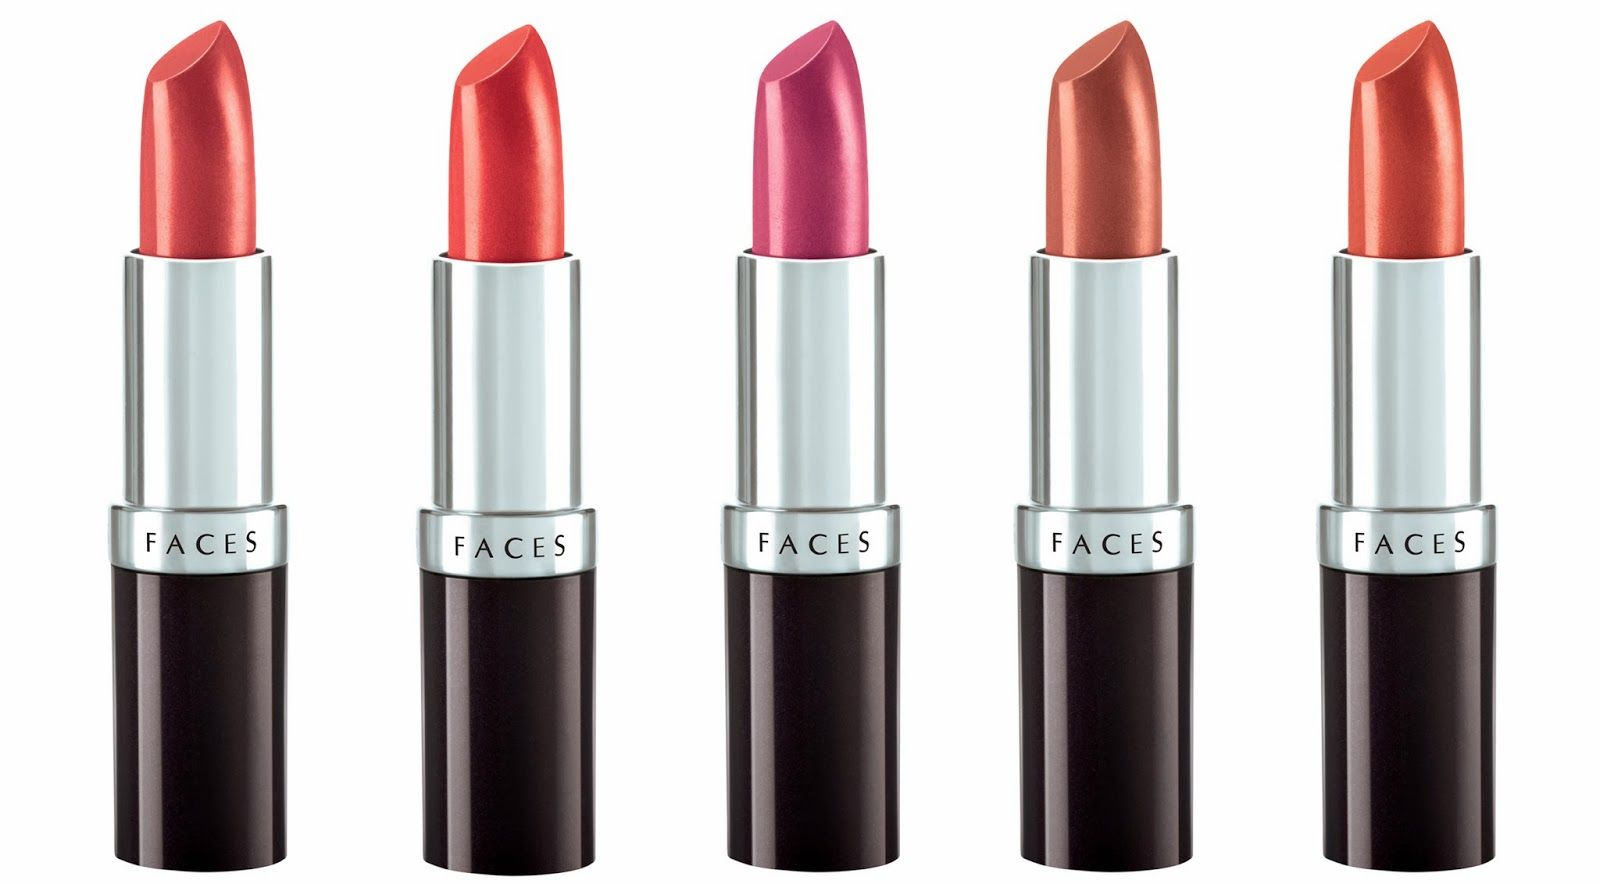 Faces Cosmetics Exclusive Line Of Makeup Skincare Products Personal Care Accessories Recently Launched Their Silk Range Faces Cosmetics Lipstick Cosmetics